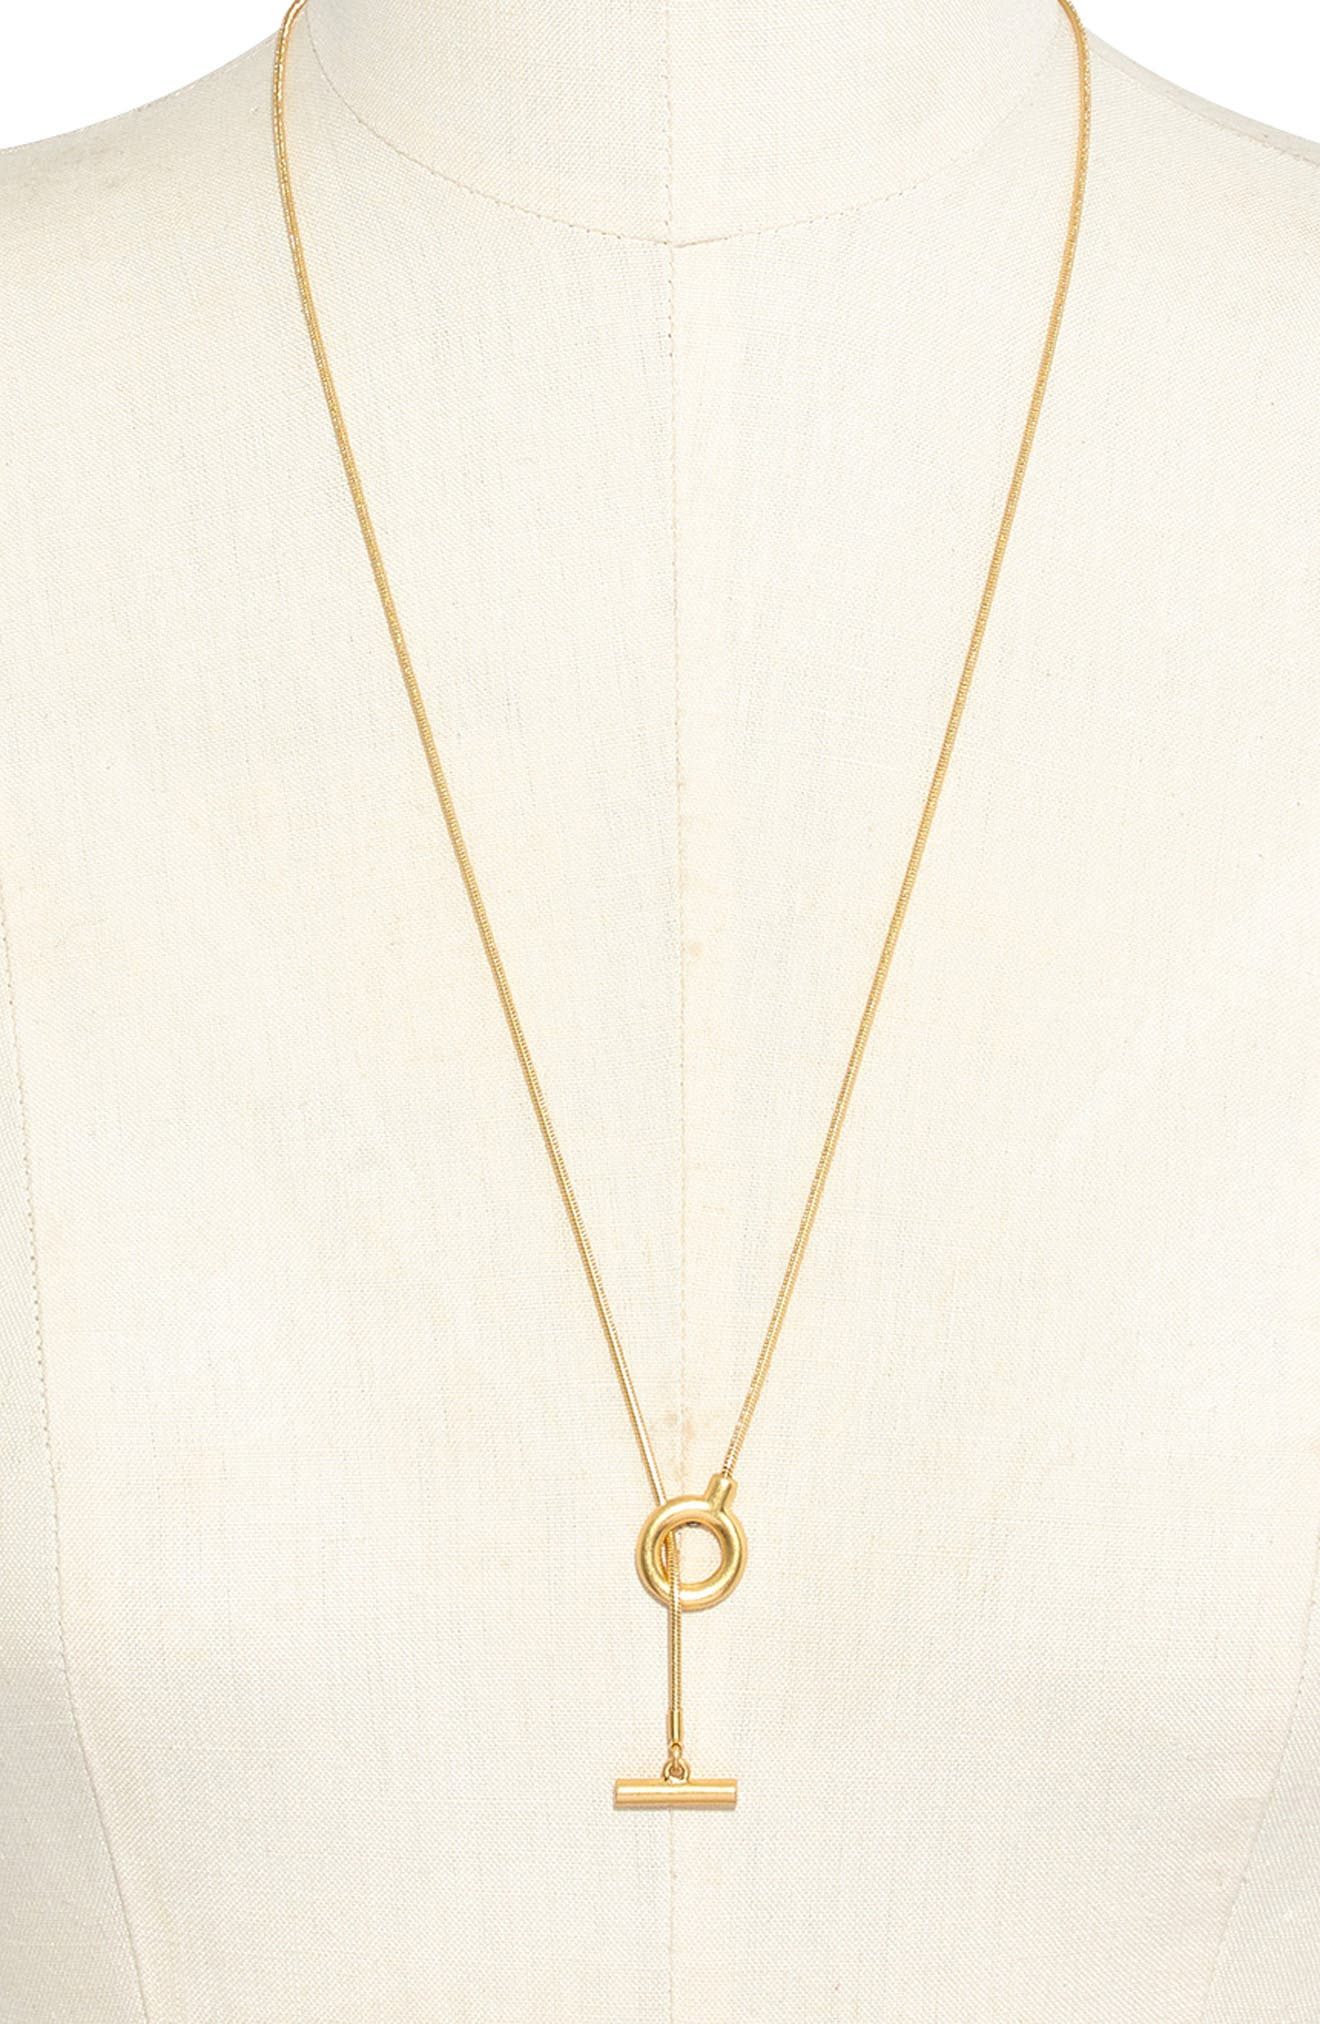 MADEWELL, Toggle Lariat Necklace, Main thumbnail 1, color, VINTAGE GOLD